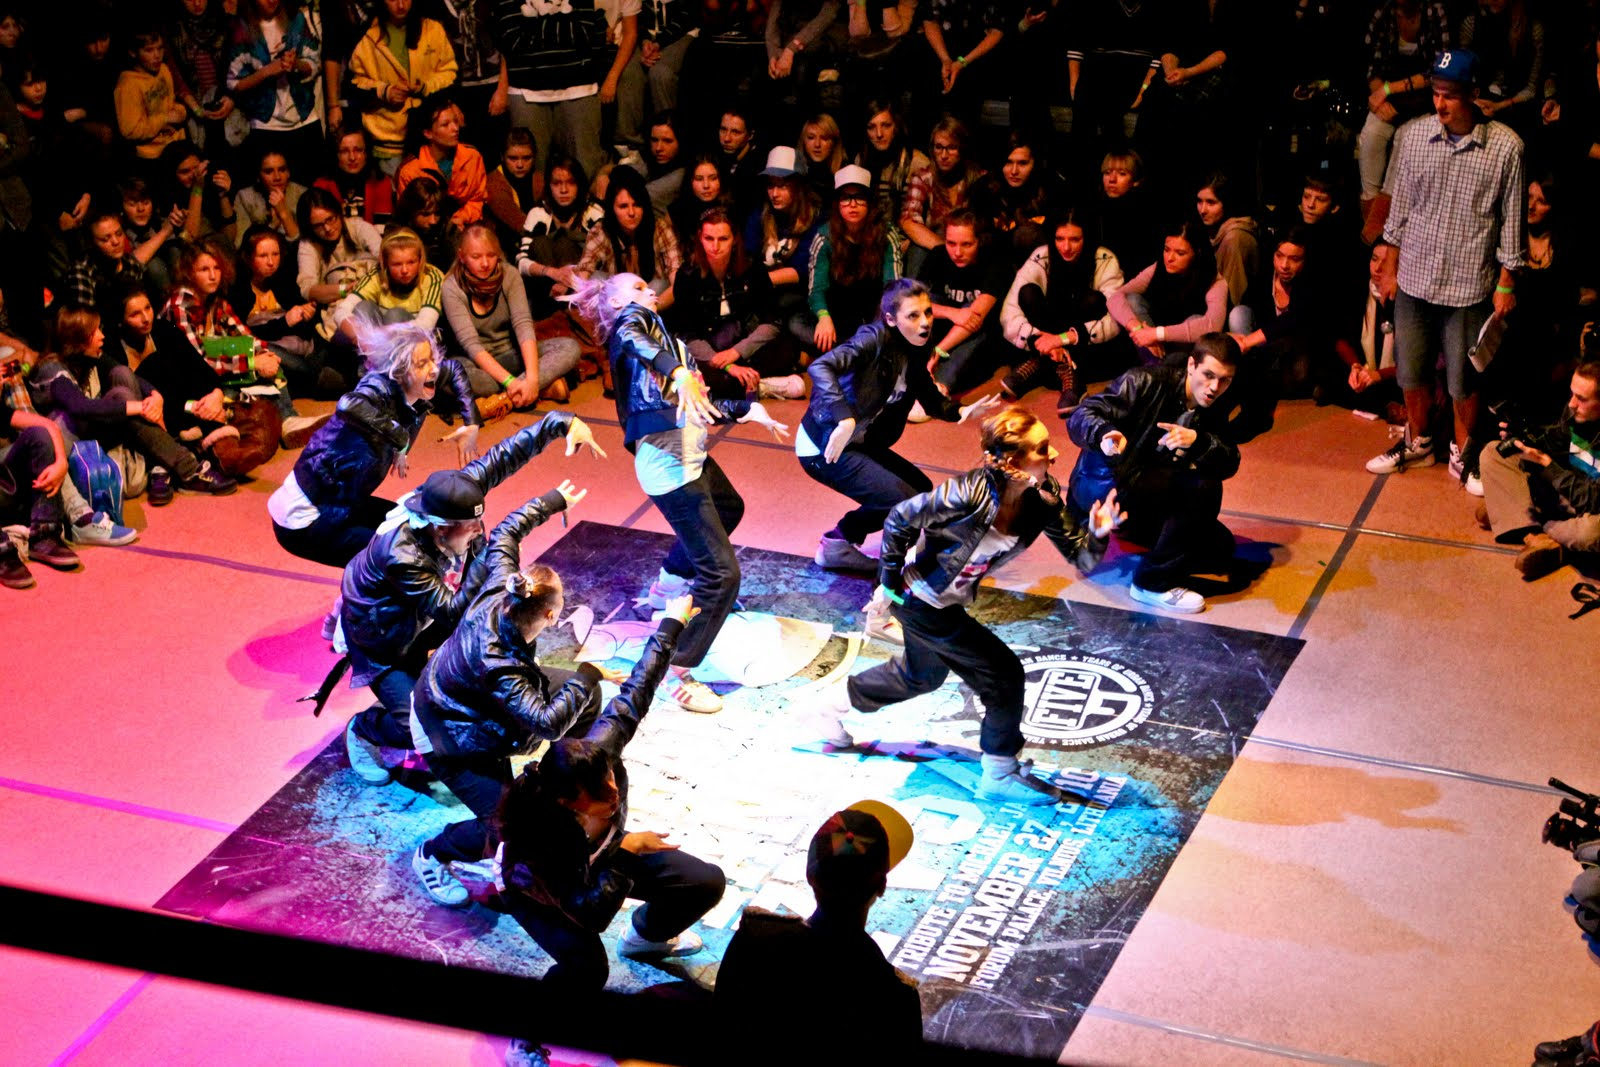 Urban Dance 2010 MJ show - IMG_4151.jpg